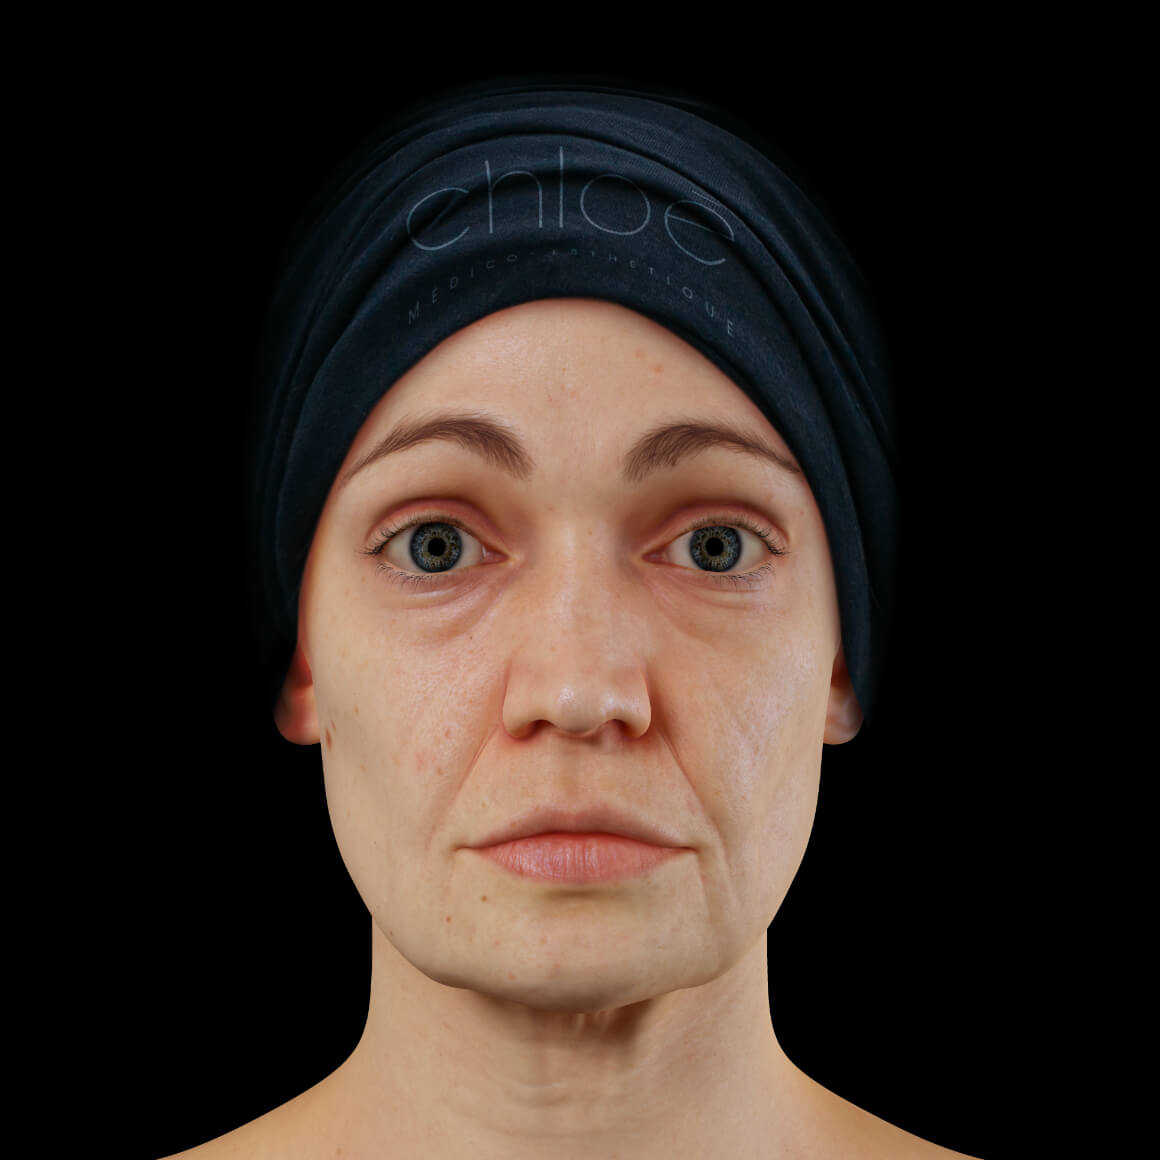 Female patient from Clinique Chloé facing front showing facial skin laxity